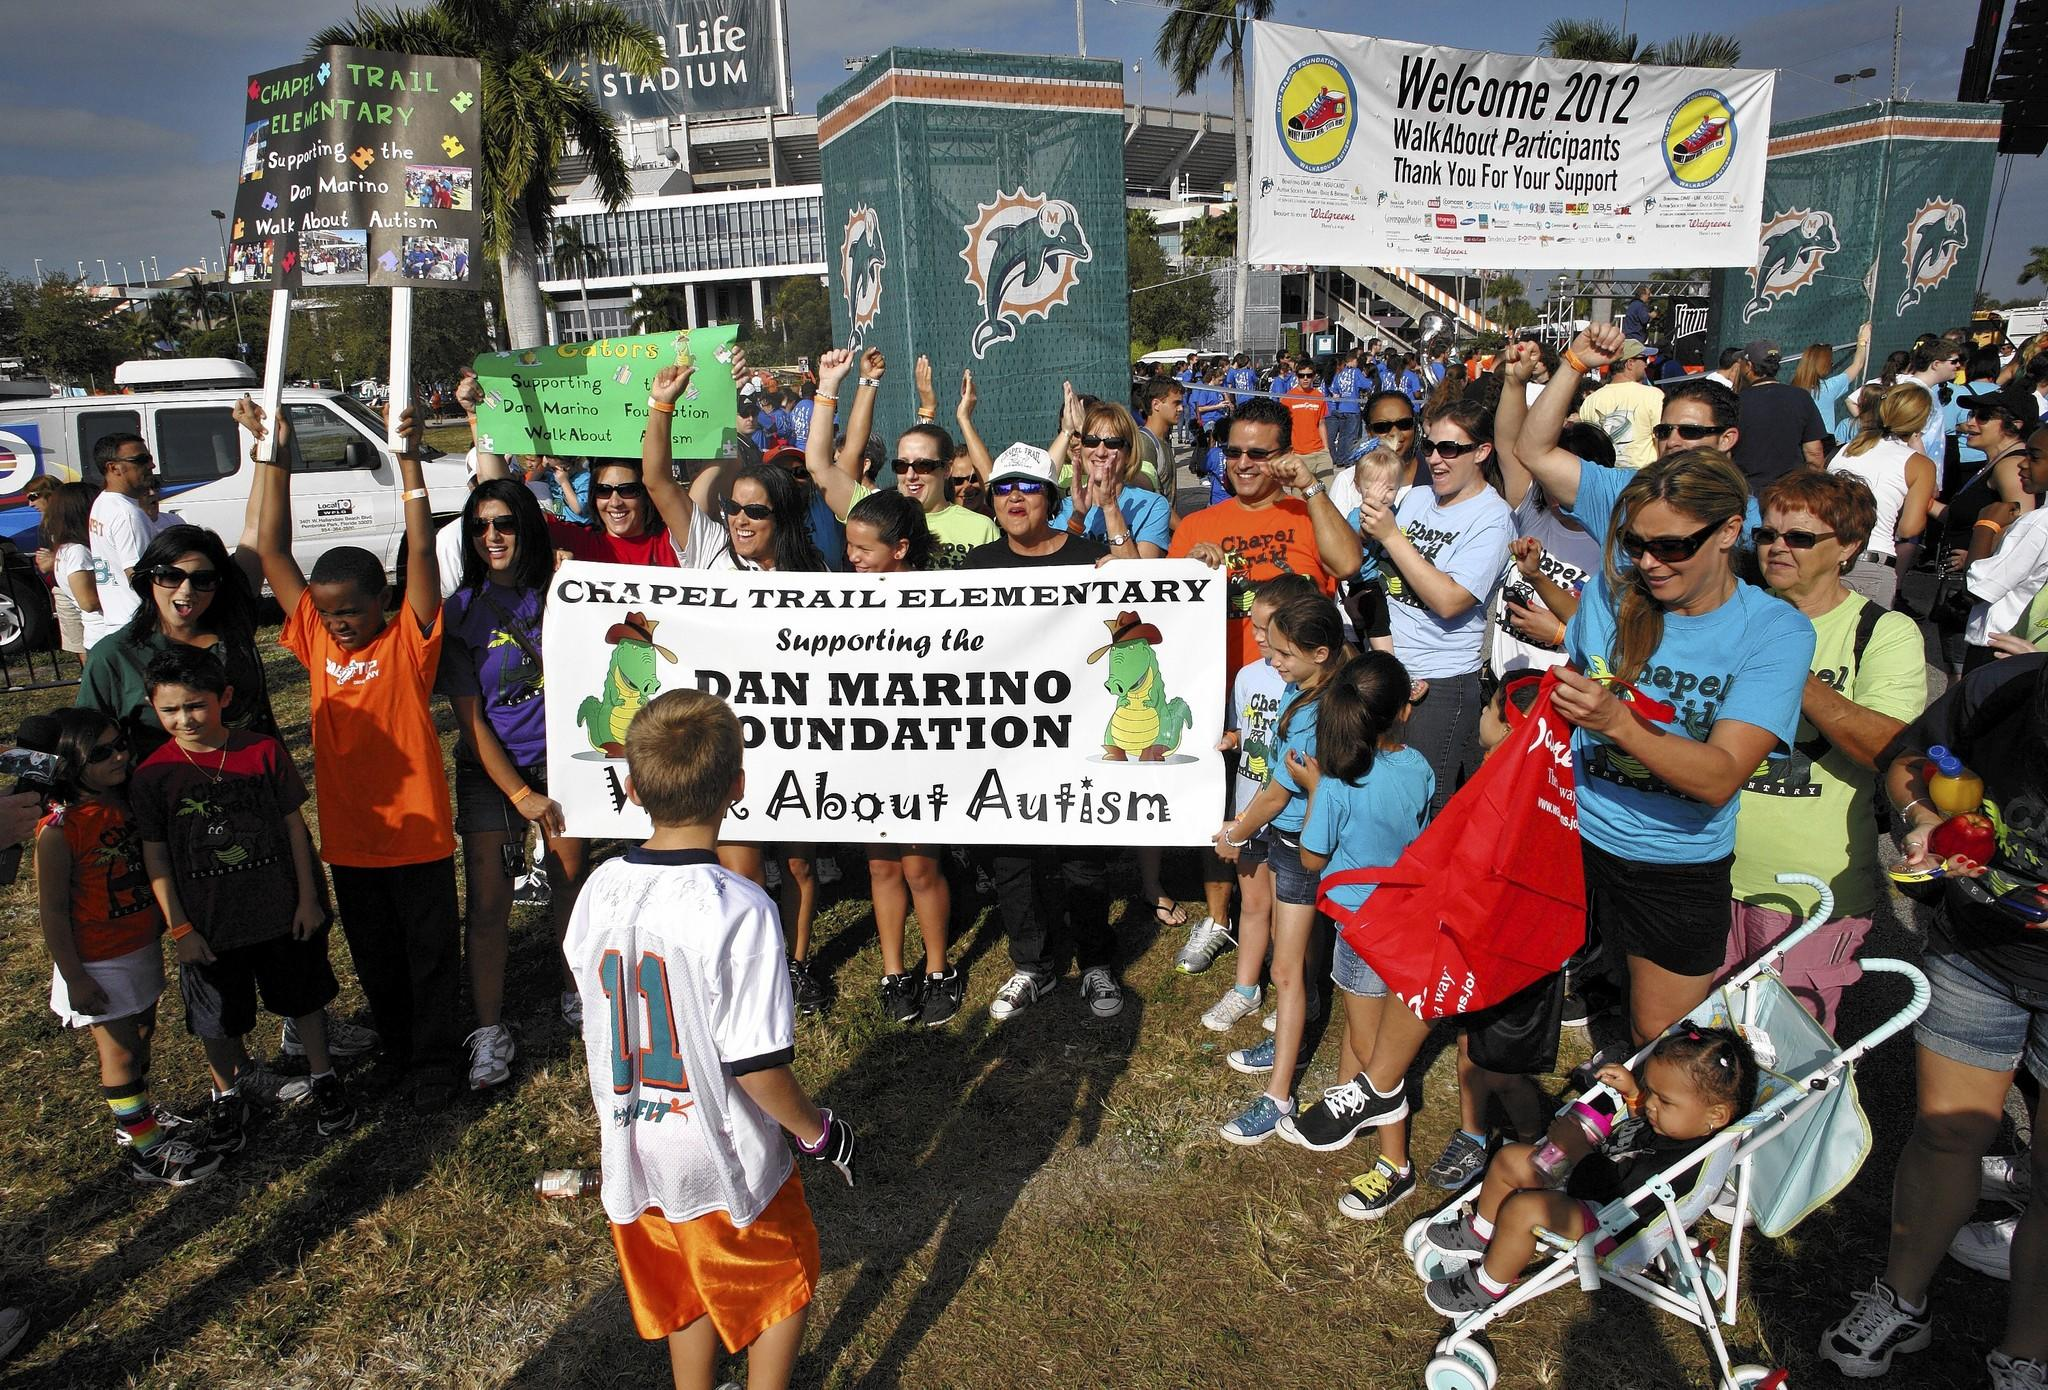 People attend the Dan Marino Foundation Walkabout Autism event in the Sunlife Stadium on January 28, 2012.